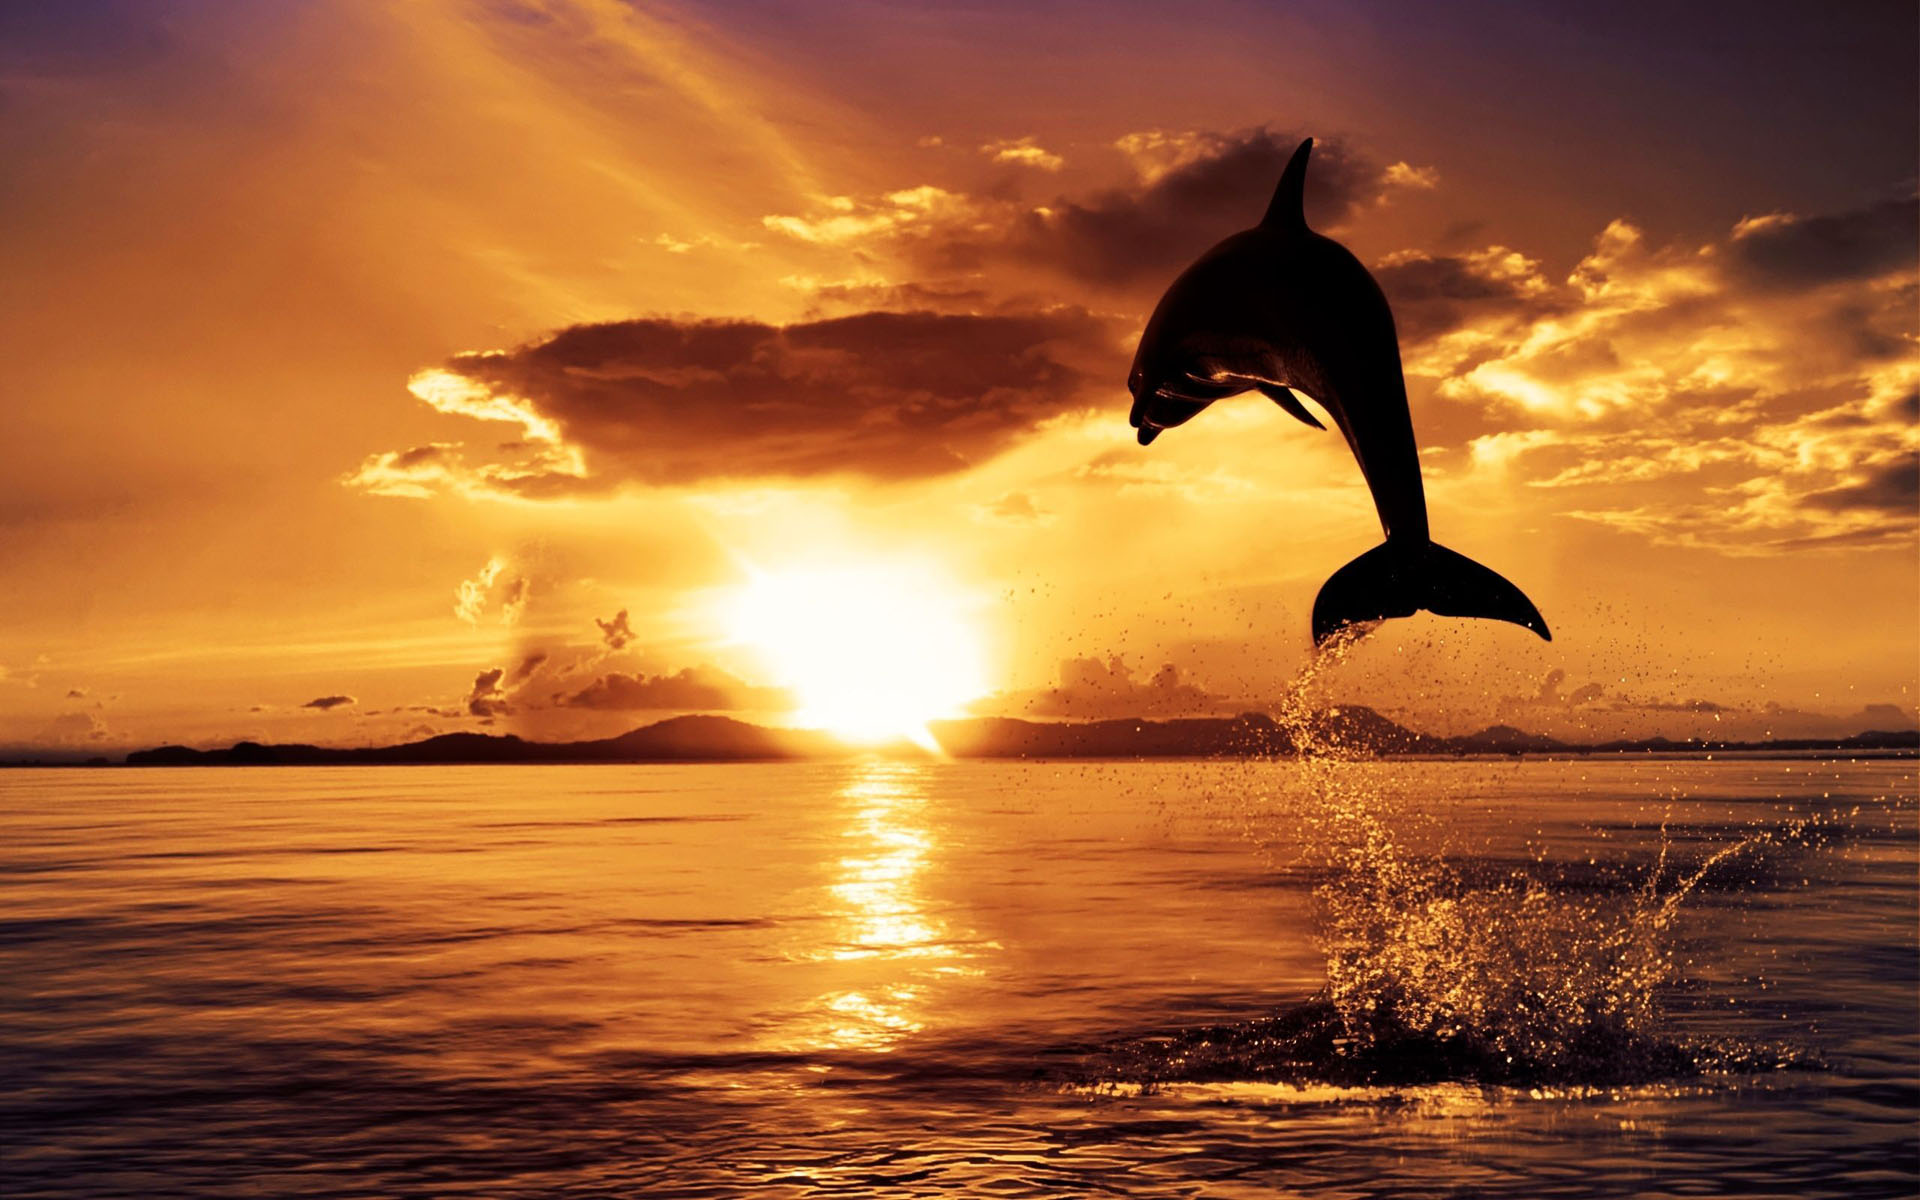 Dolphin in Sunset HD Desktop Wallpaper HD Desktop Wallpaper 1920x1200